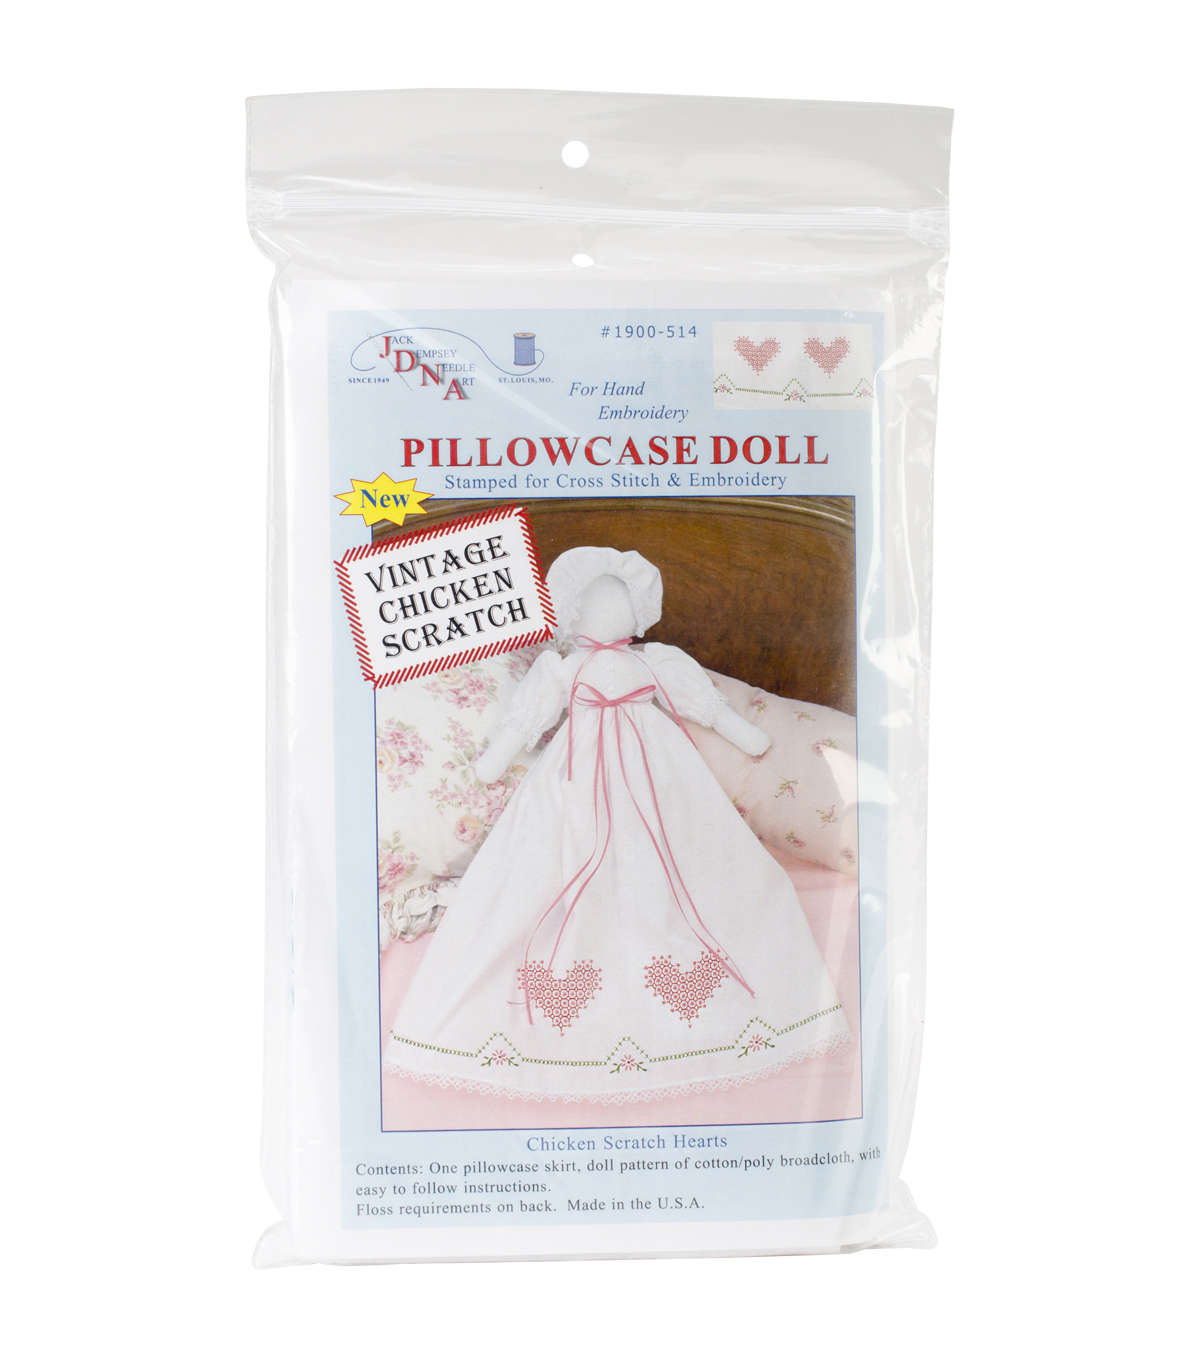 Jack Dempsey Stamped Pillowcase Doll Kit Chicken Scratch Hearts White